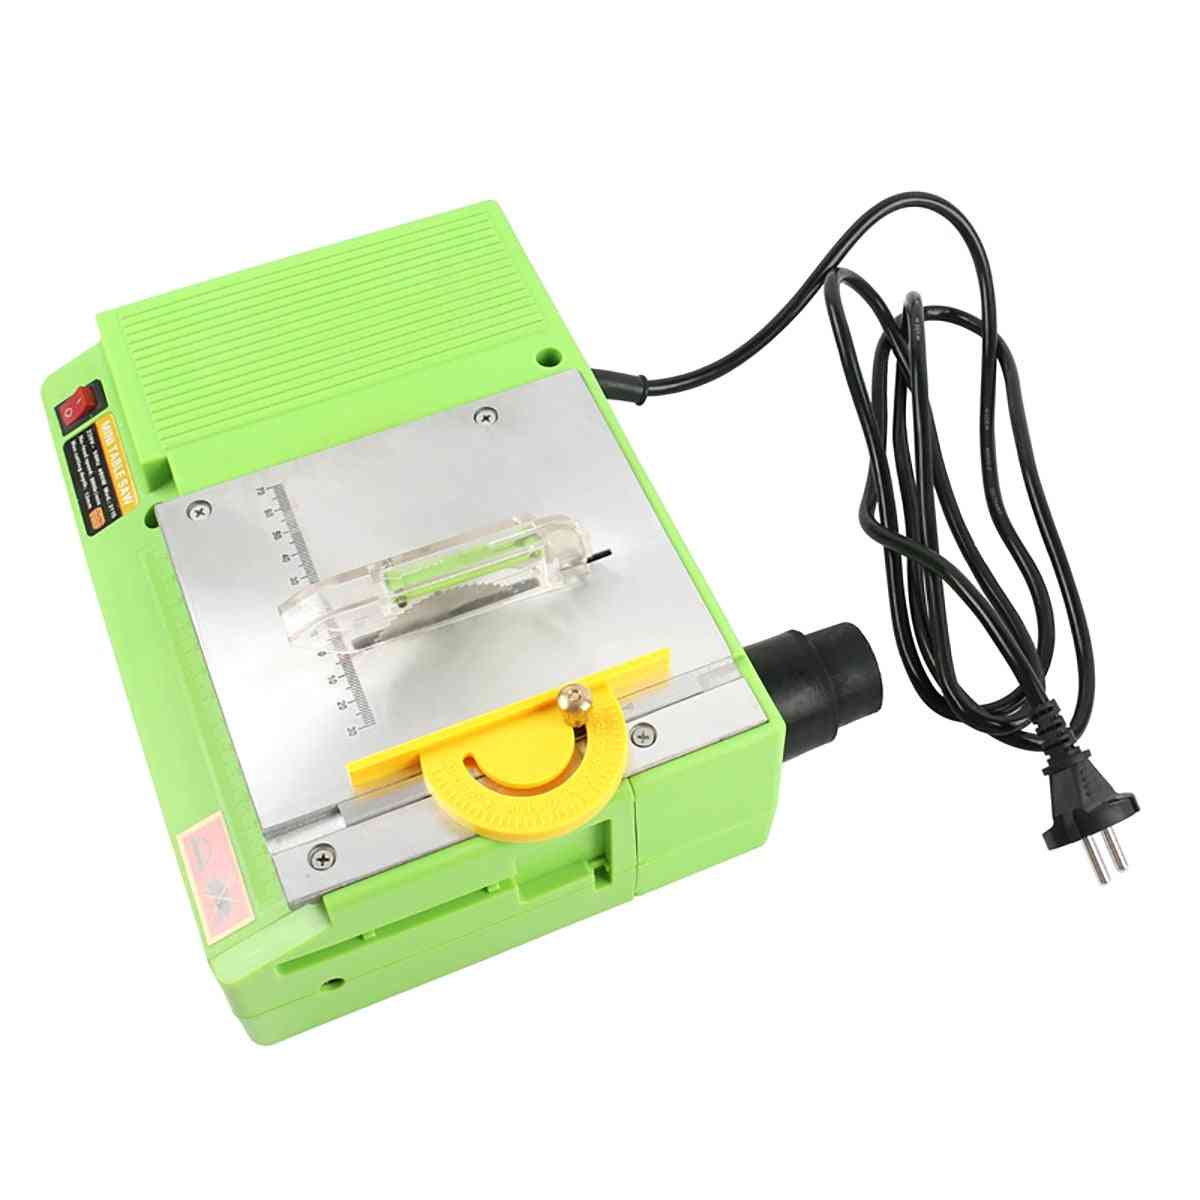 Multi Functional Woodworking Bench Lathe Saws